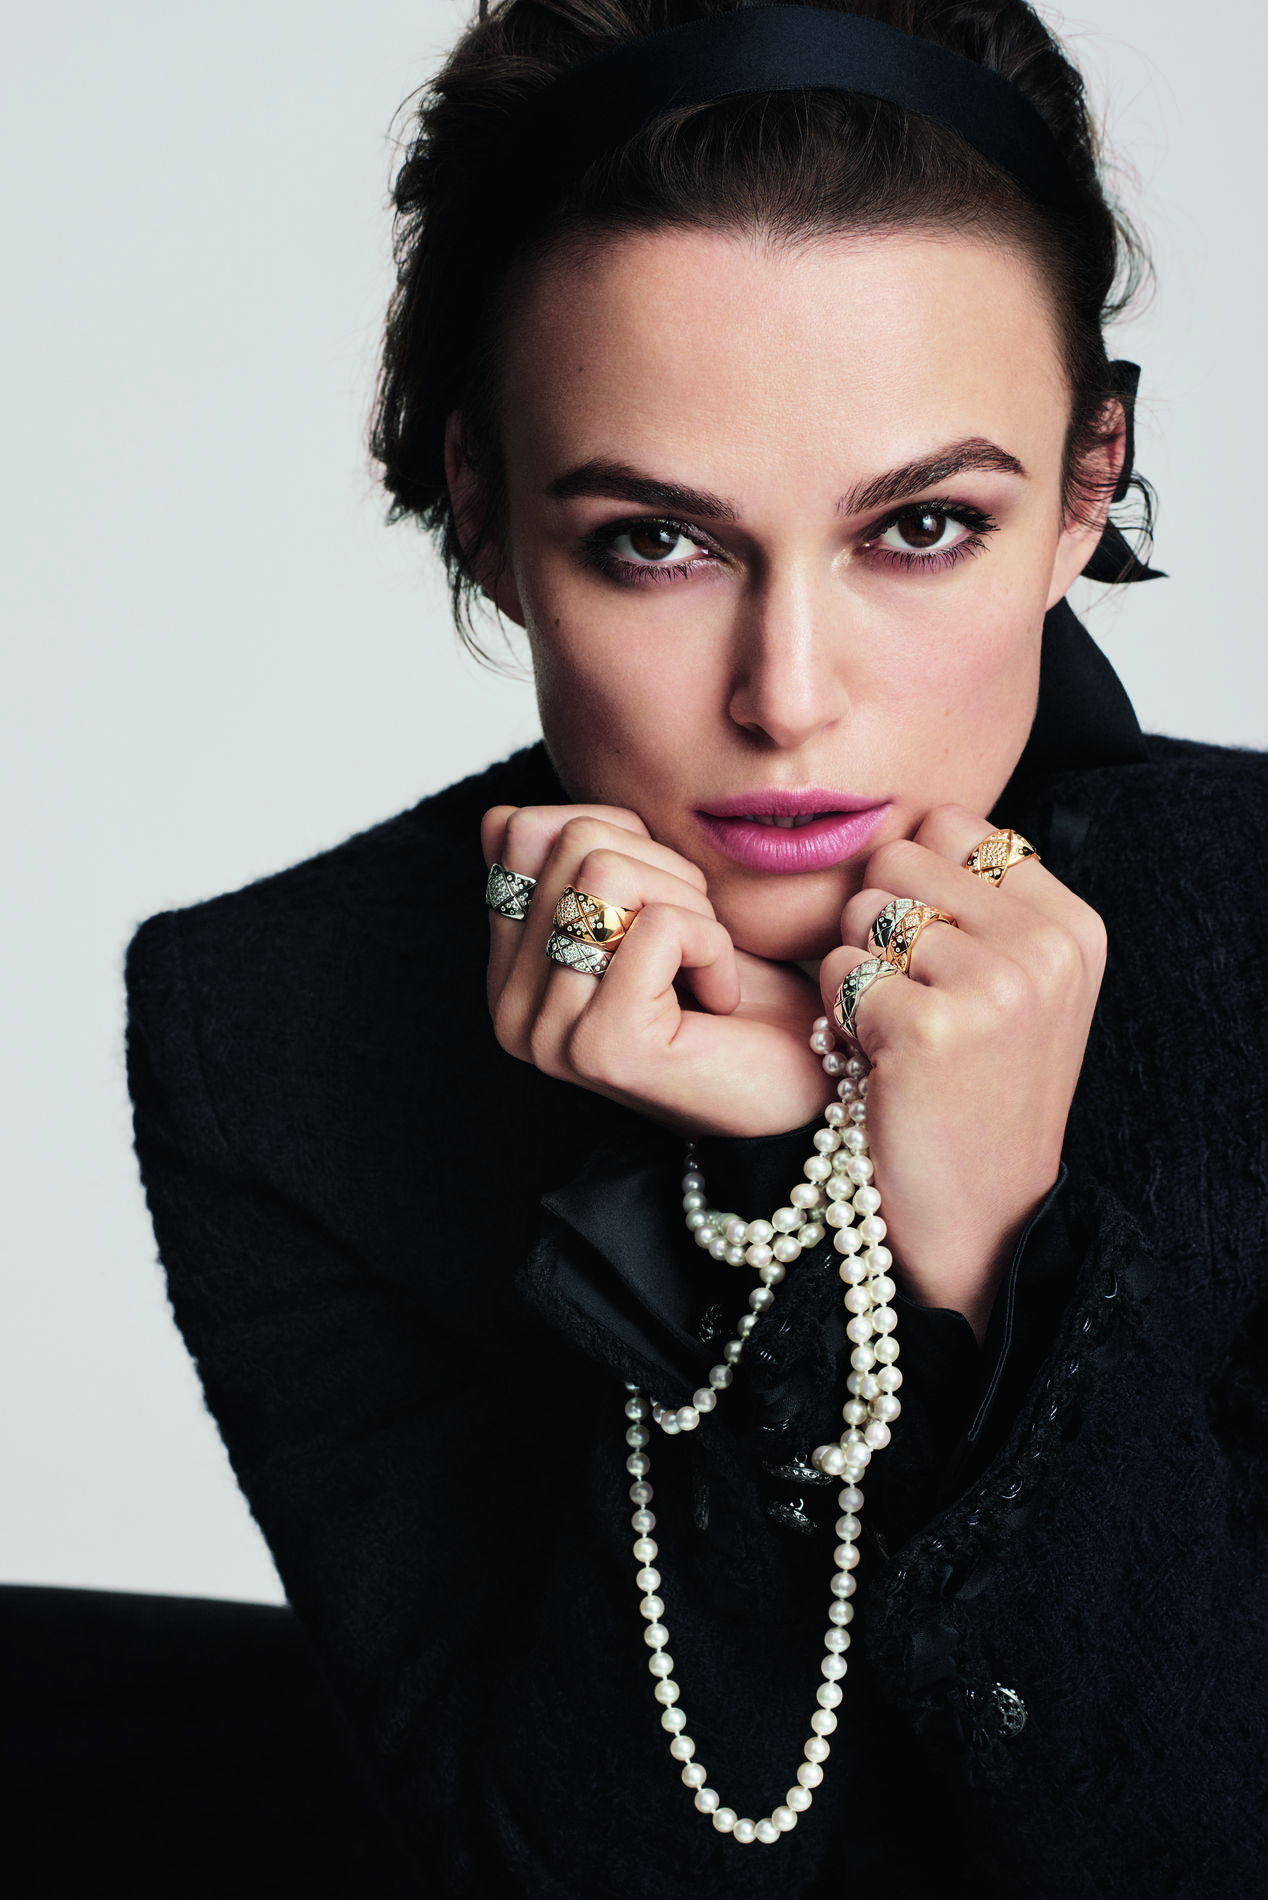 keira knightley nouvelle g rie chanel joaillerie madame figaro. Black Bedroom Furniture Sets. Home Design Ideas